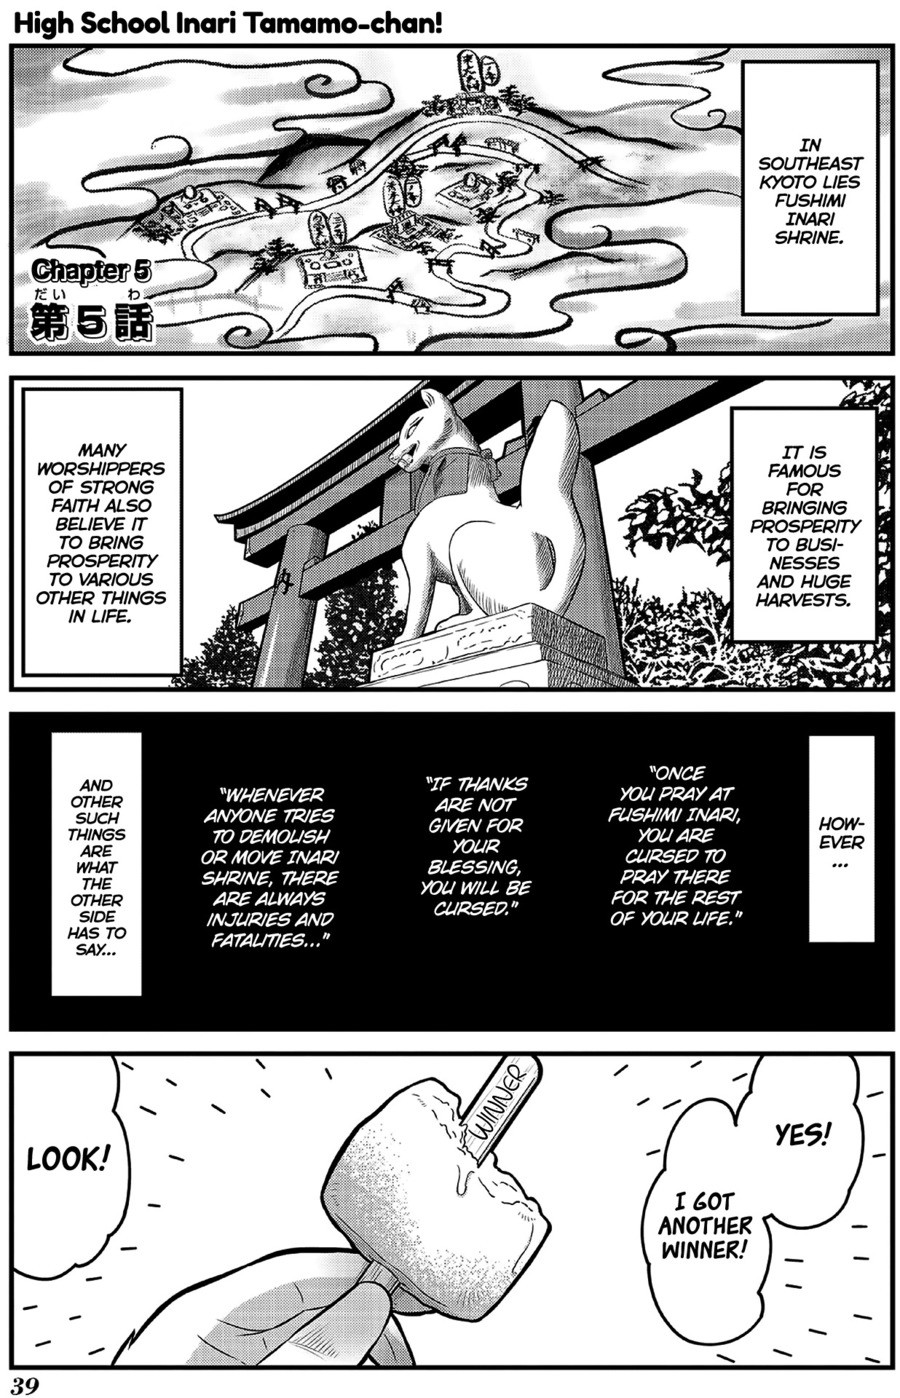 High School Inari Tamamo-chan! Ch. 5 & 6. join list: CuteMonsterWaifu (1357 subs)Mention History . WORS